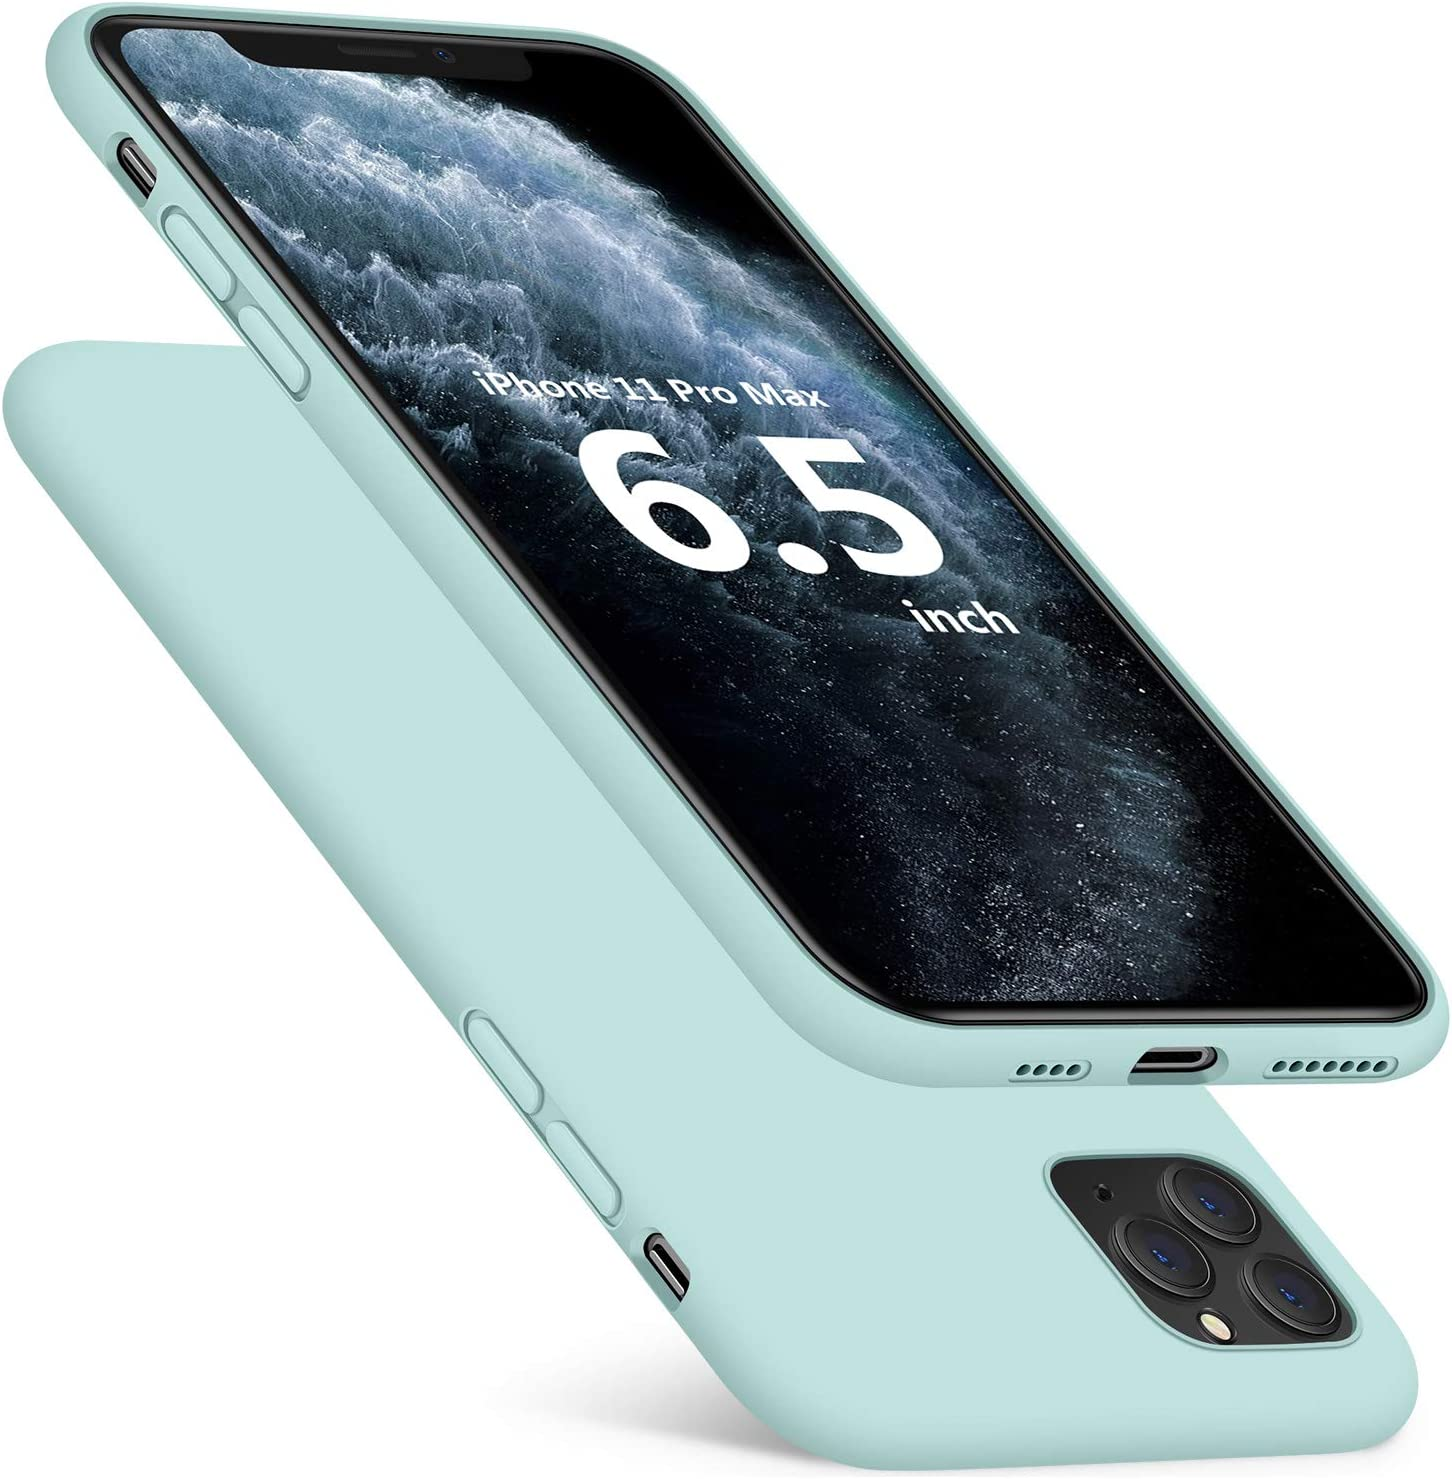 "DTTO iPhone 11 Pro Max Case, [Romance Series] Full Covered Shockproof Silicone Cover [Enhanced Camera and Screen Protection] with Honeycomb Cushion for Apple iPhone 11 Pro Max 2019 6.5"", Mint Green"